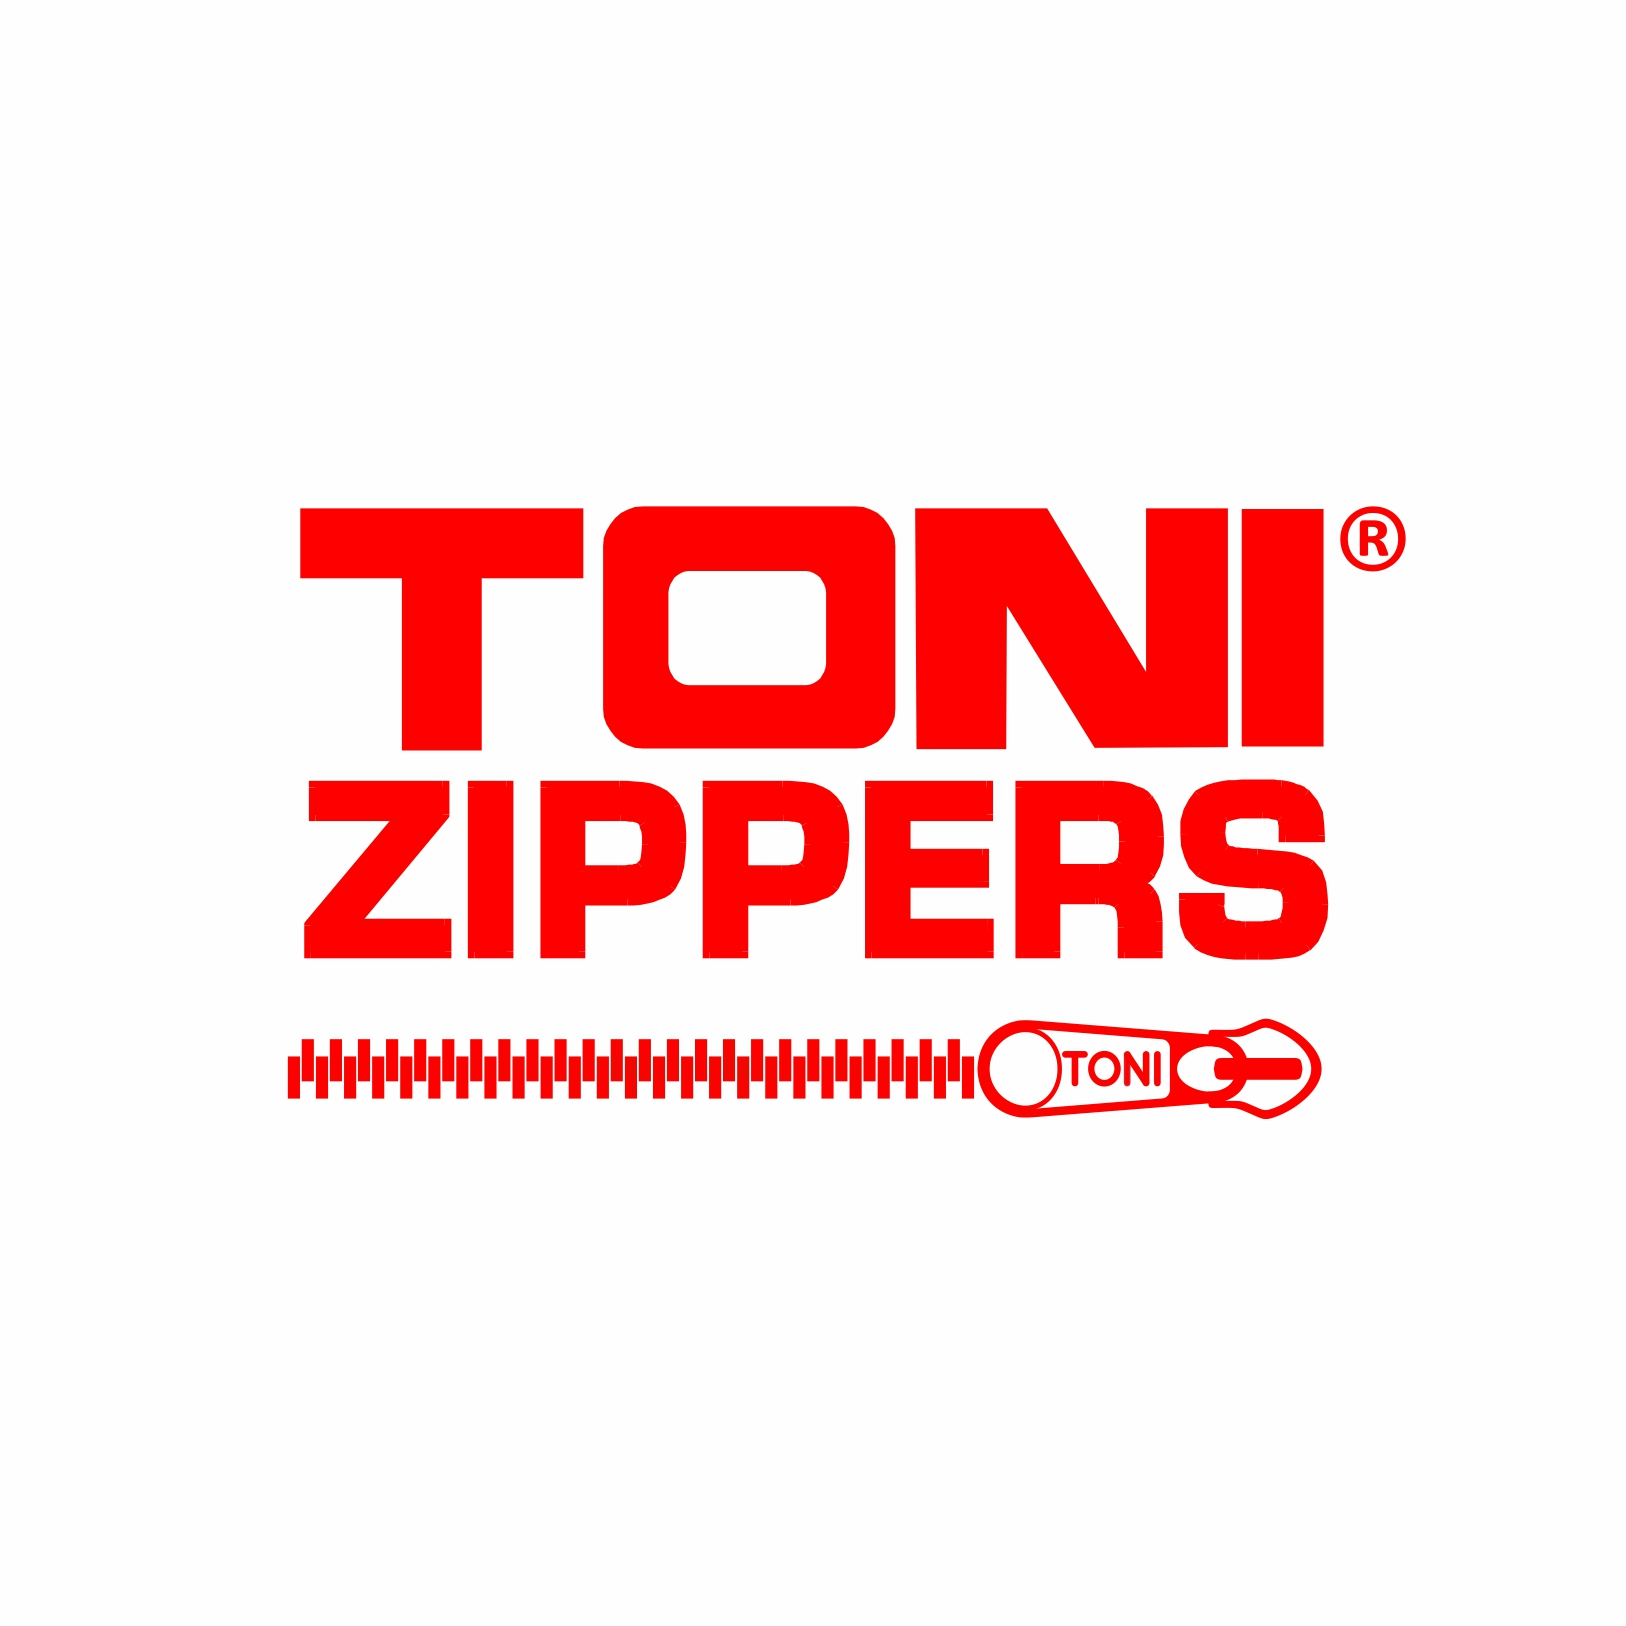 Image for Toni Zippers - India's largest Manufacturers